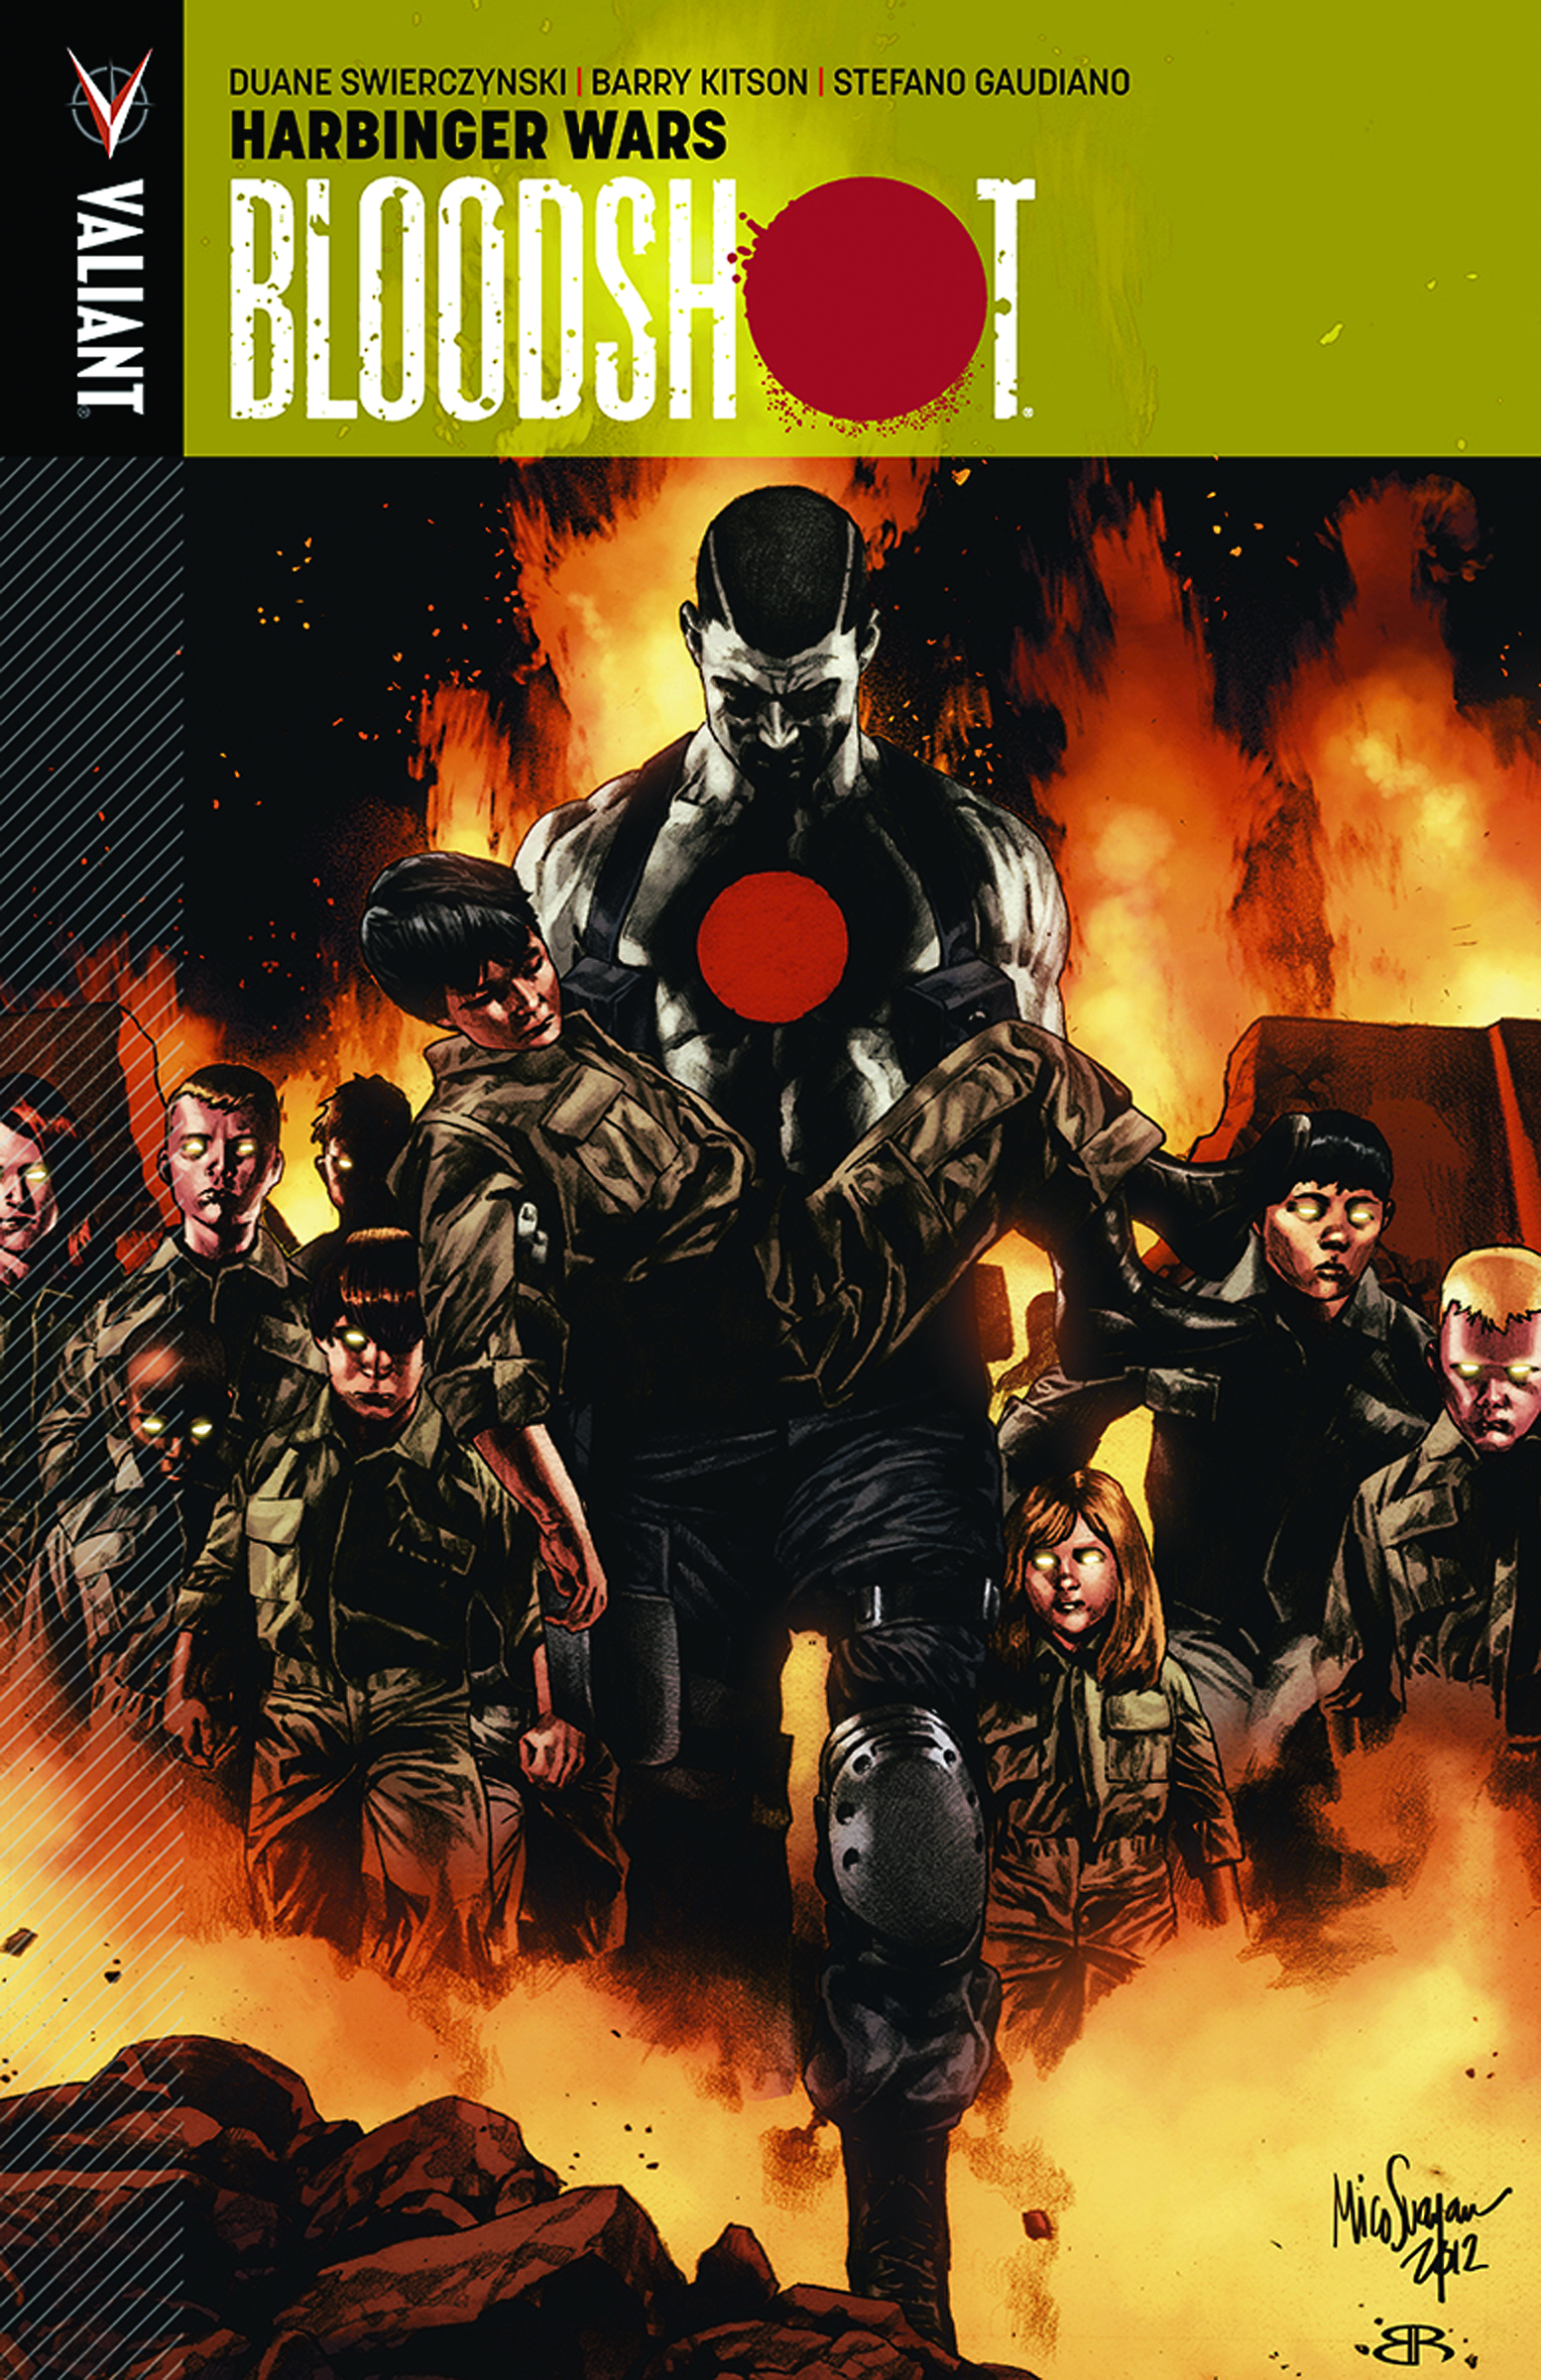 BLOODSHOT TP VOL 03 HARBINGER WARS